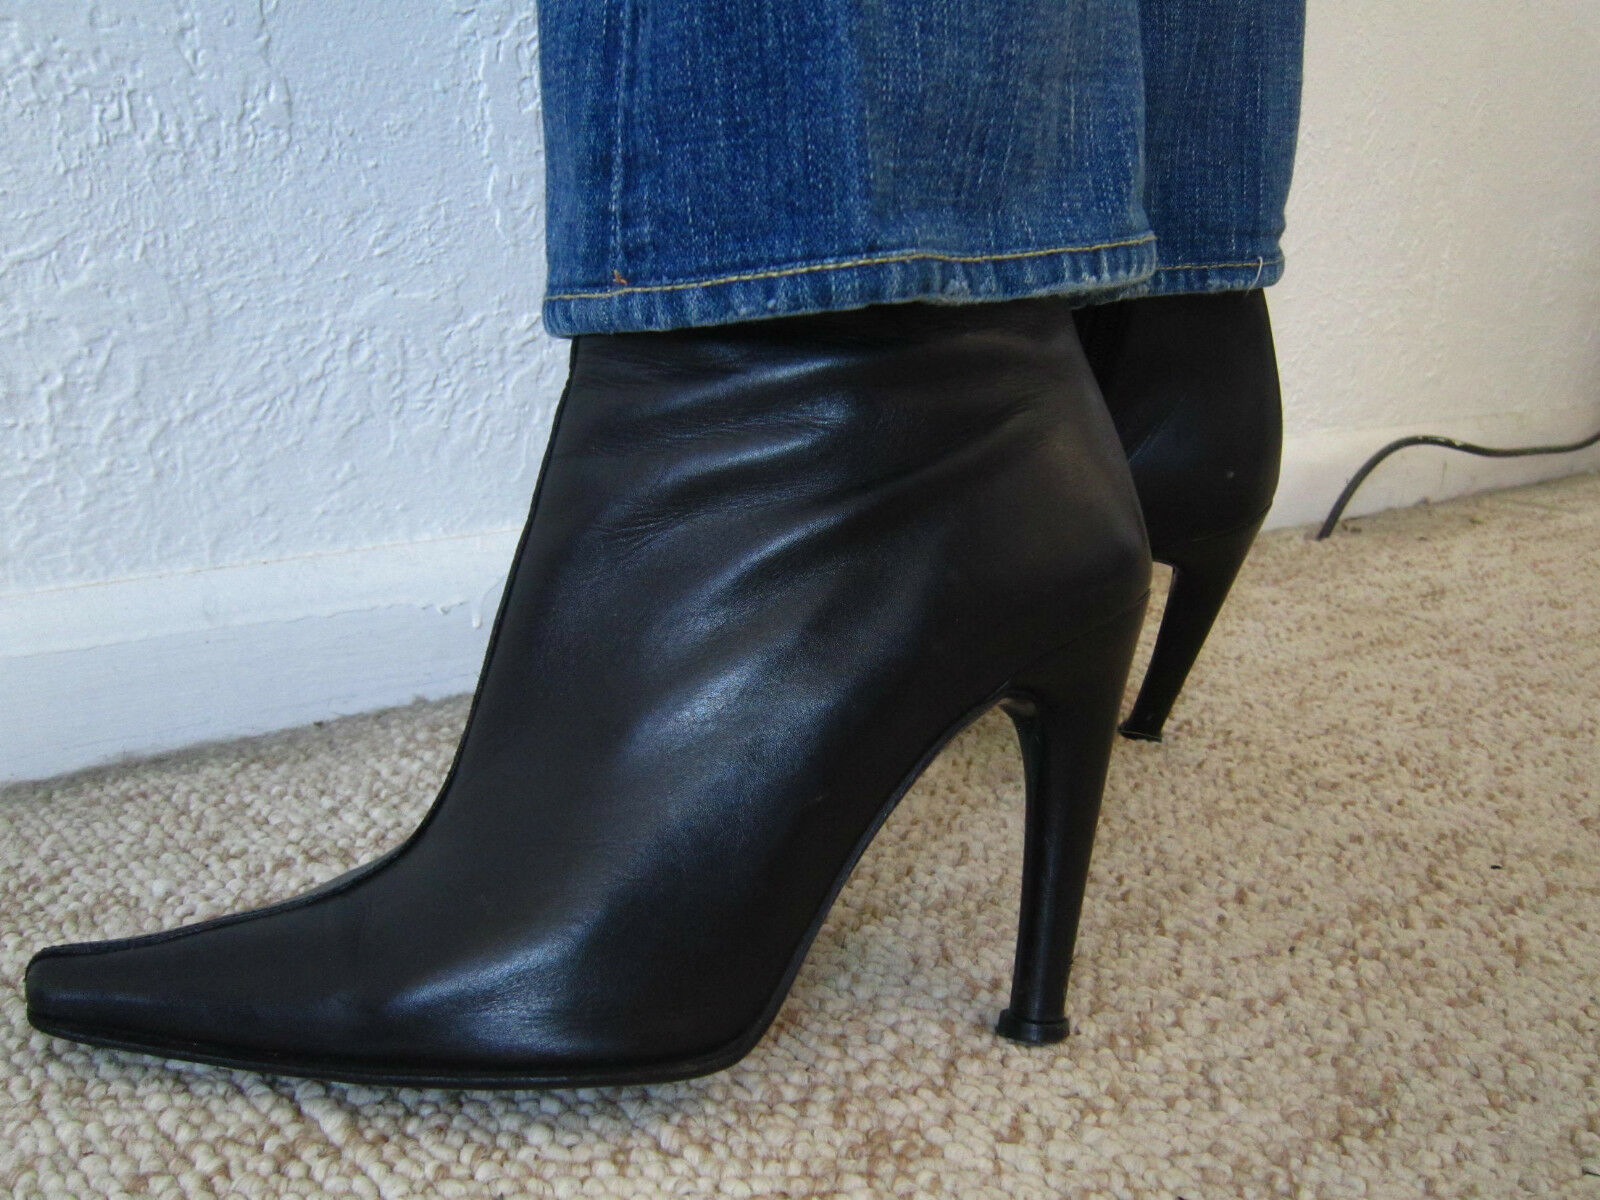 $485 CHARLES DAVID Leather Point Toe Ankle Boots !!  sz - women's 7.5